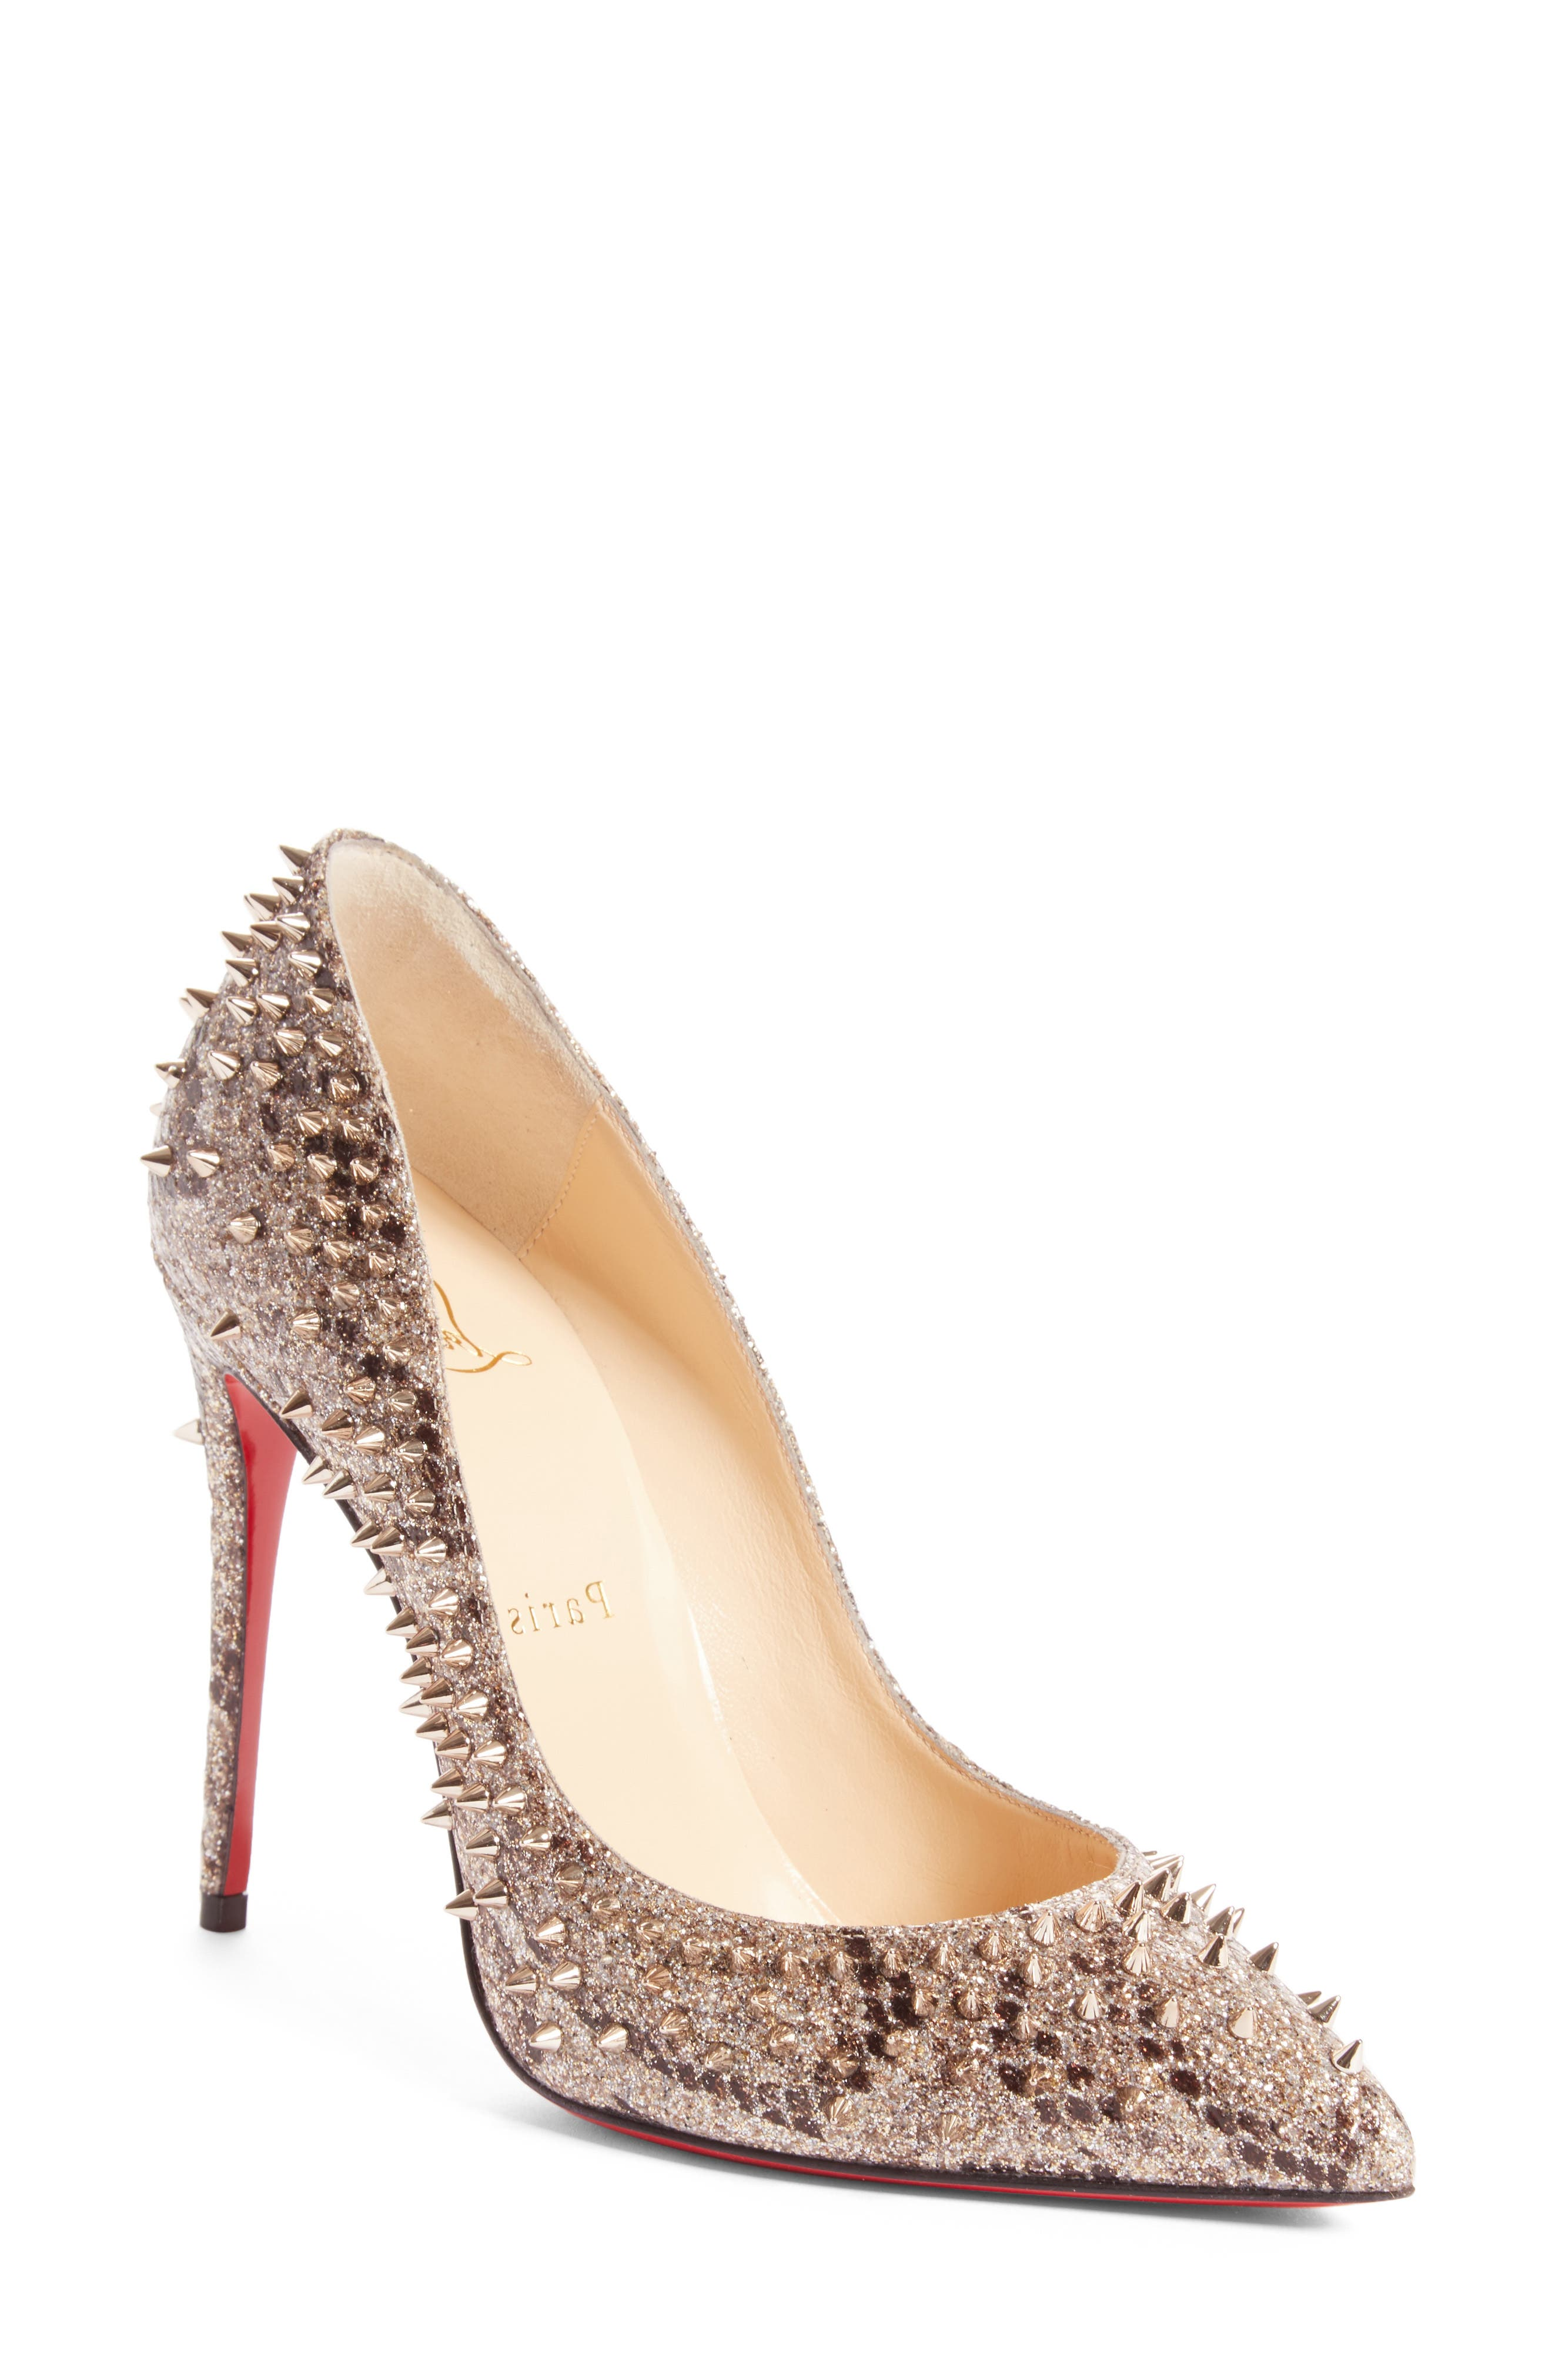 Main Image - Christian Louboutin Escarpic Spike Pump (Women)